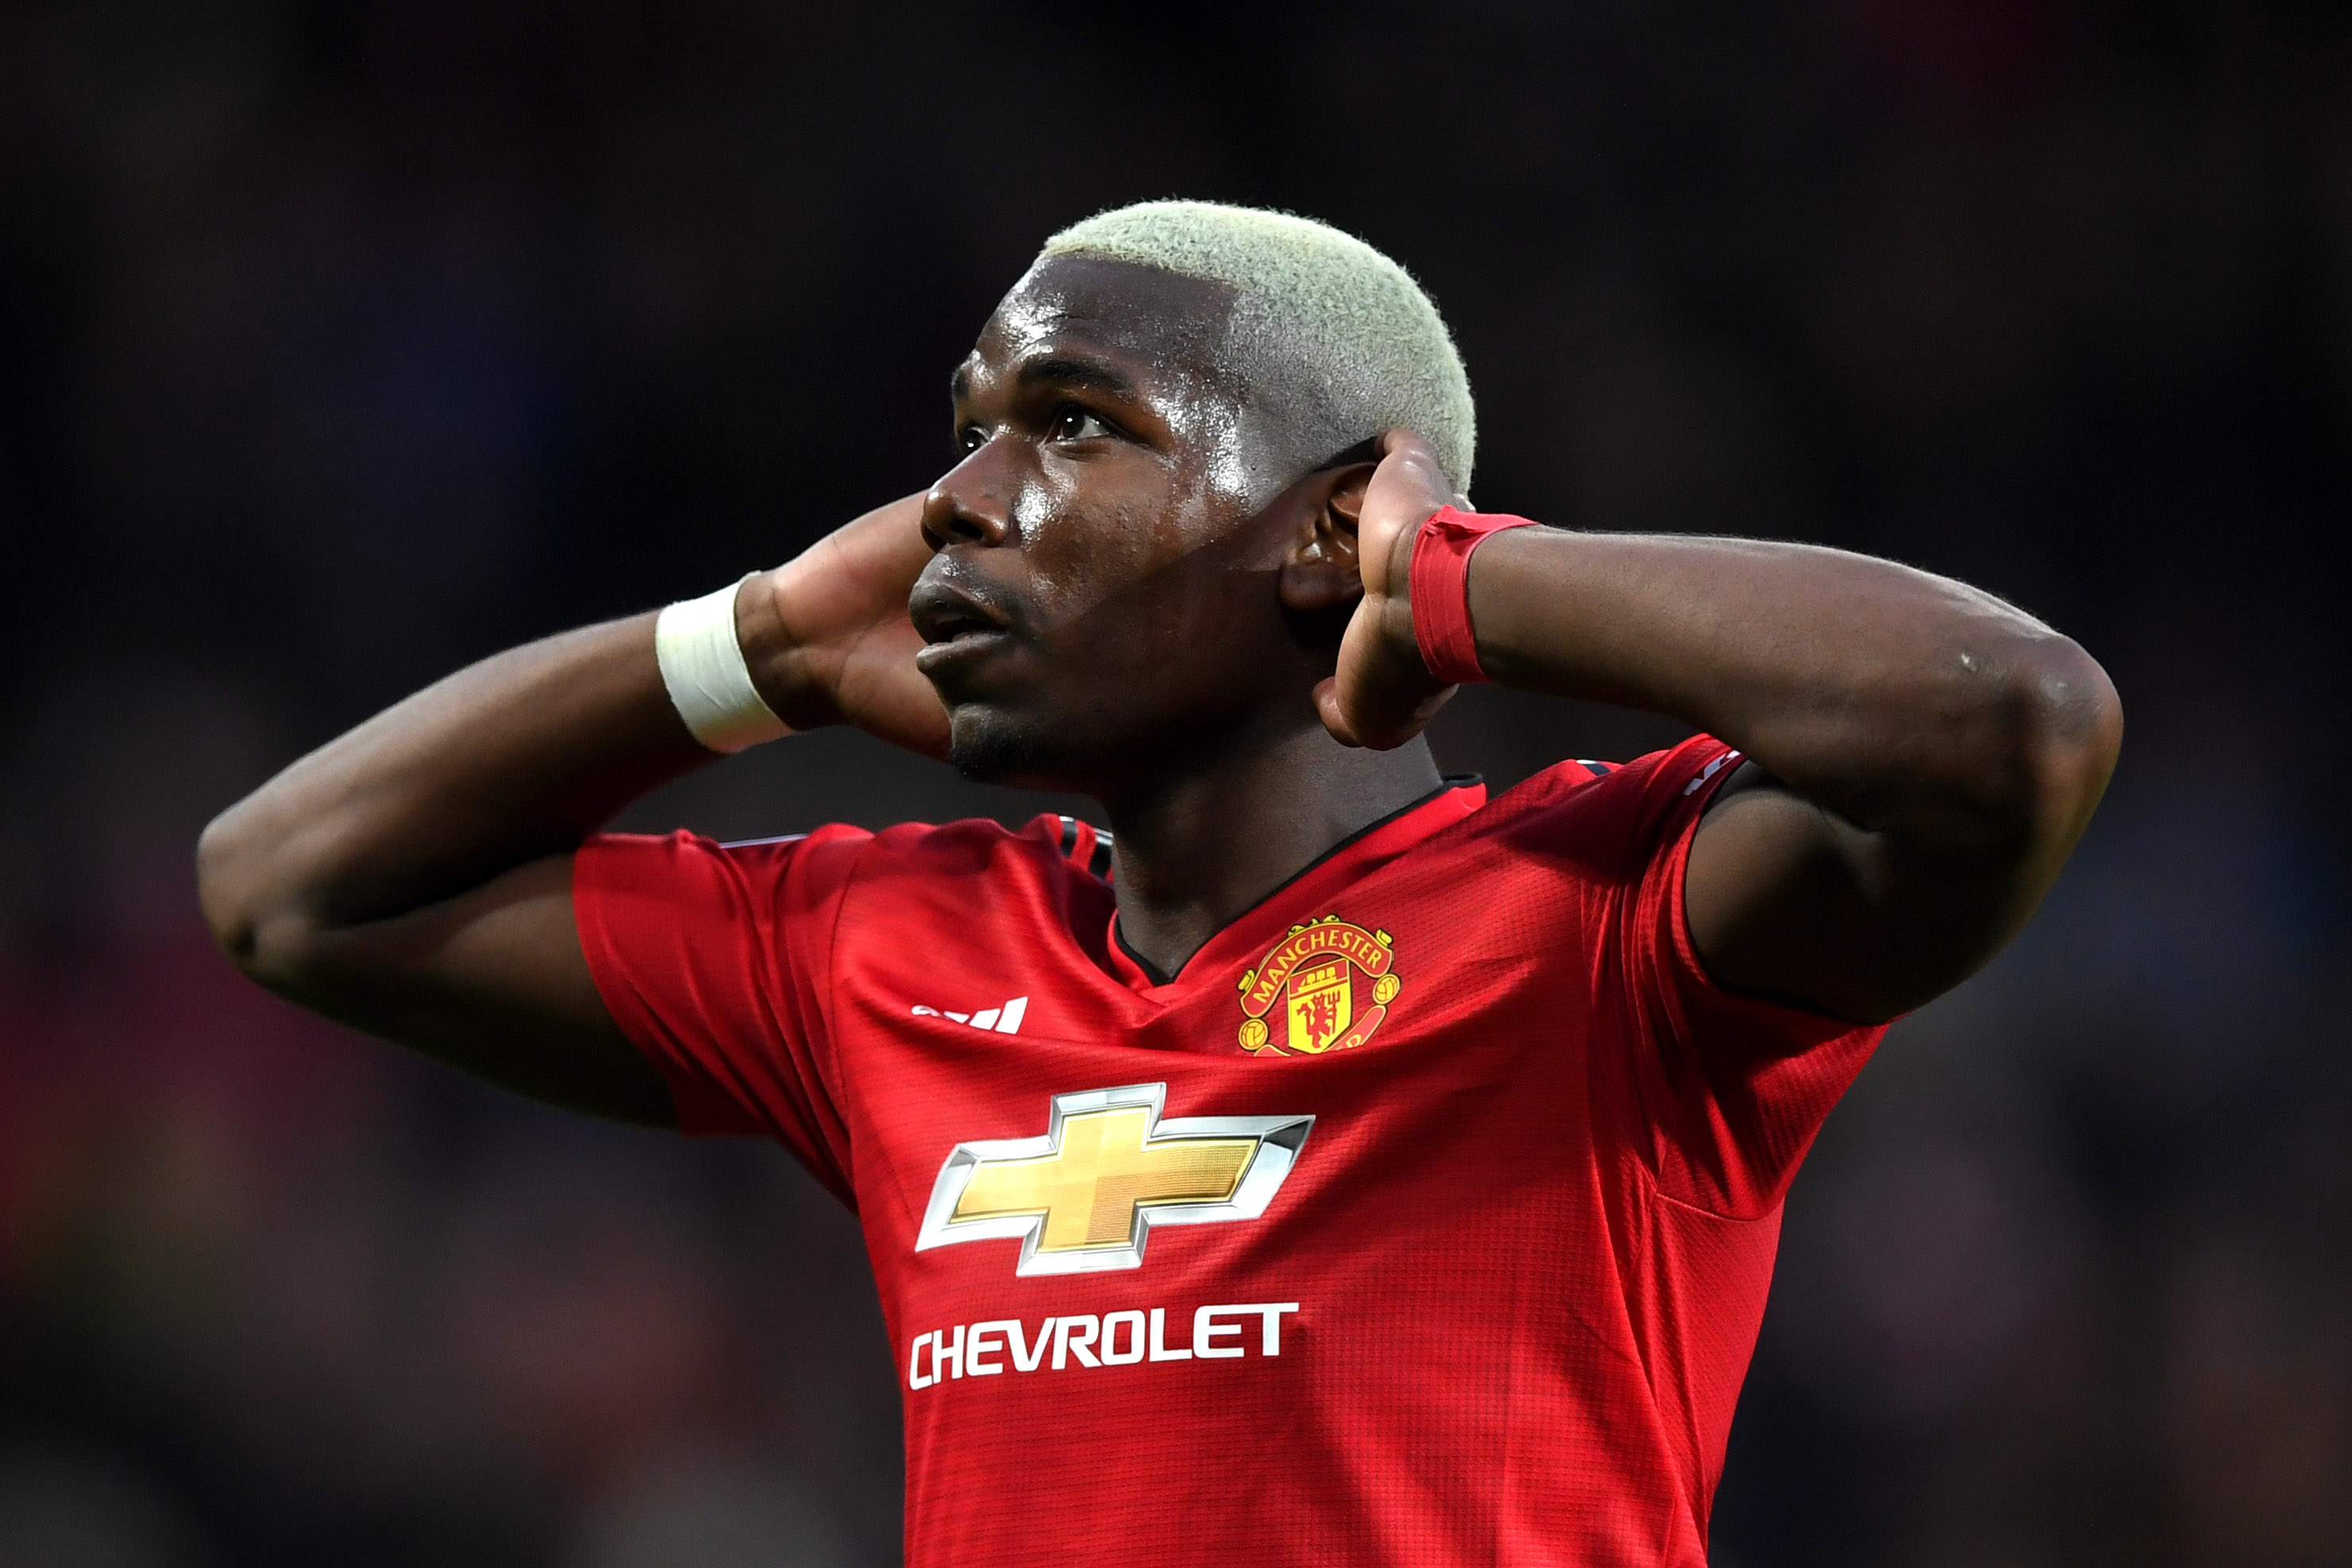 Paul Pogba has admitted playing for Real Madrid would be a dream. (Photo courtesy: AFP/Getty)